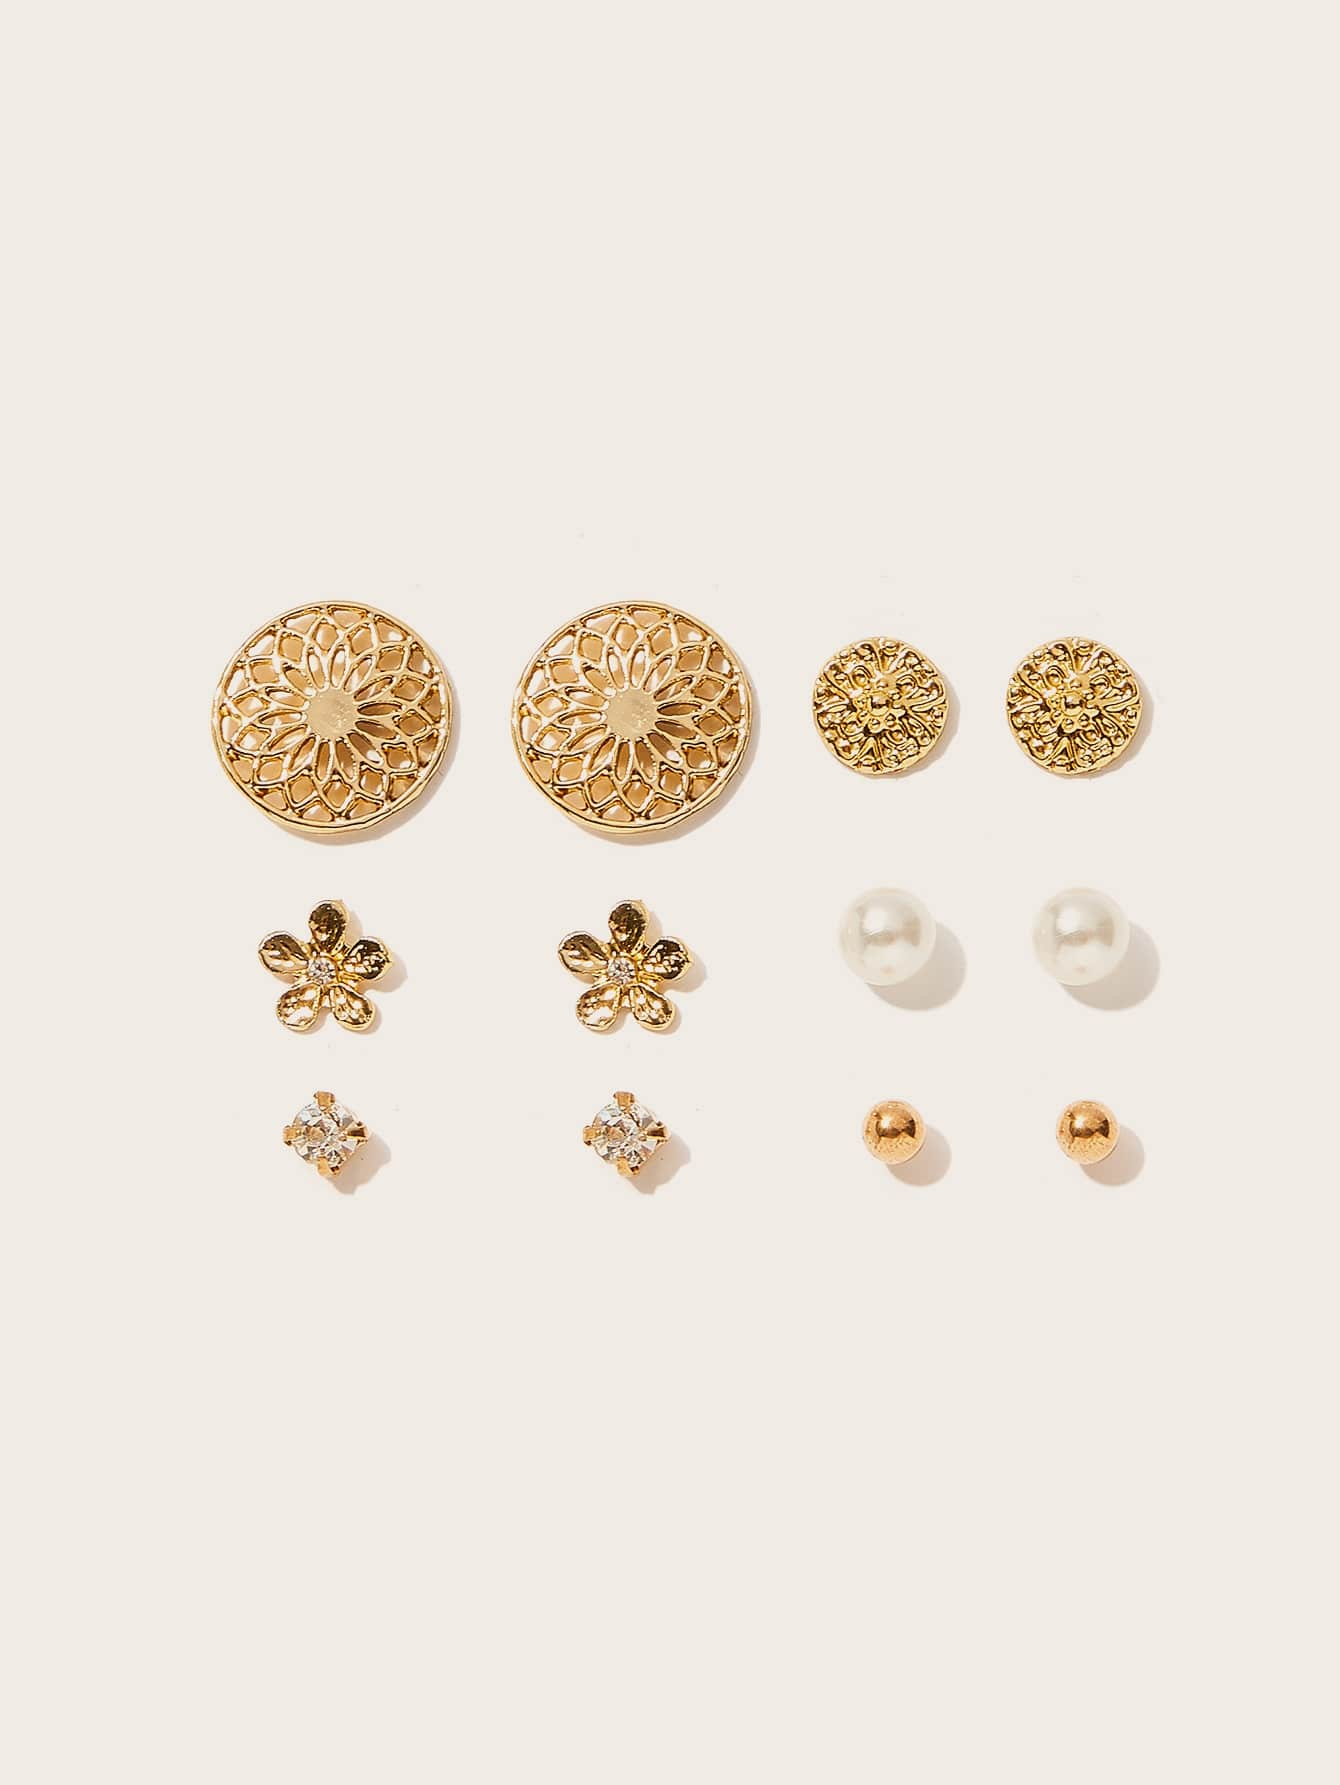 6 Pairs Golden Textured Disc & Flower Pearl Stud Earrings